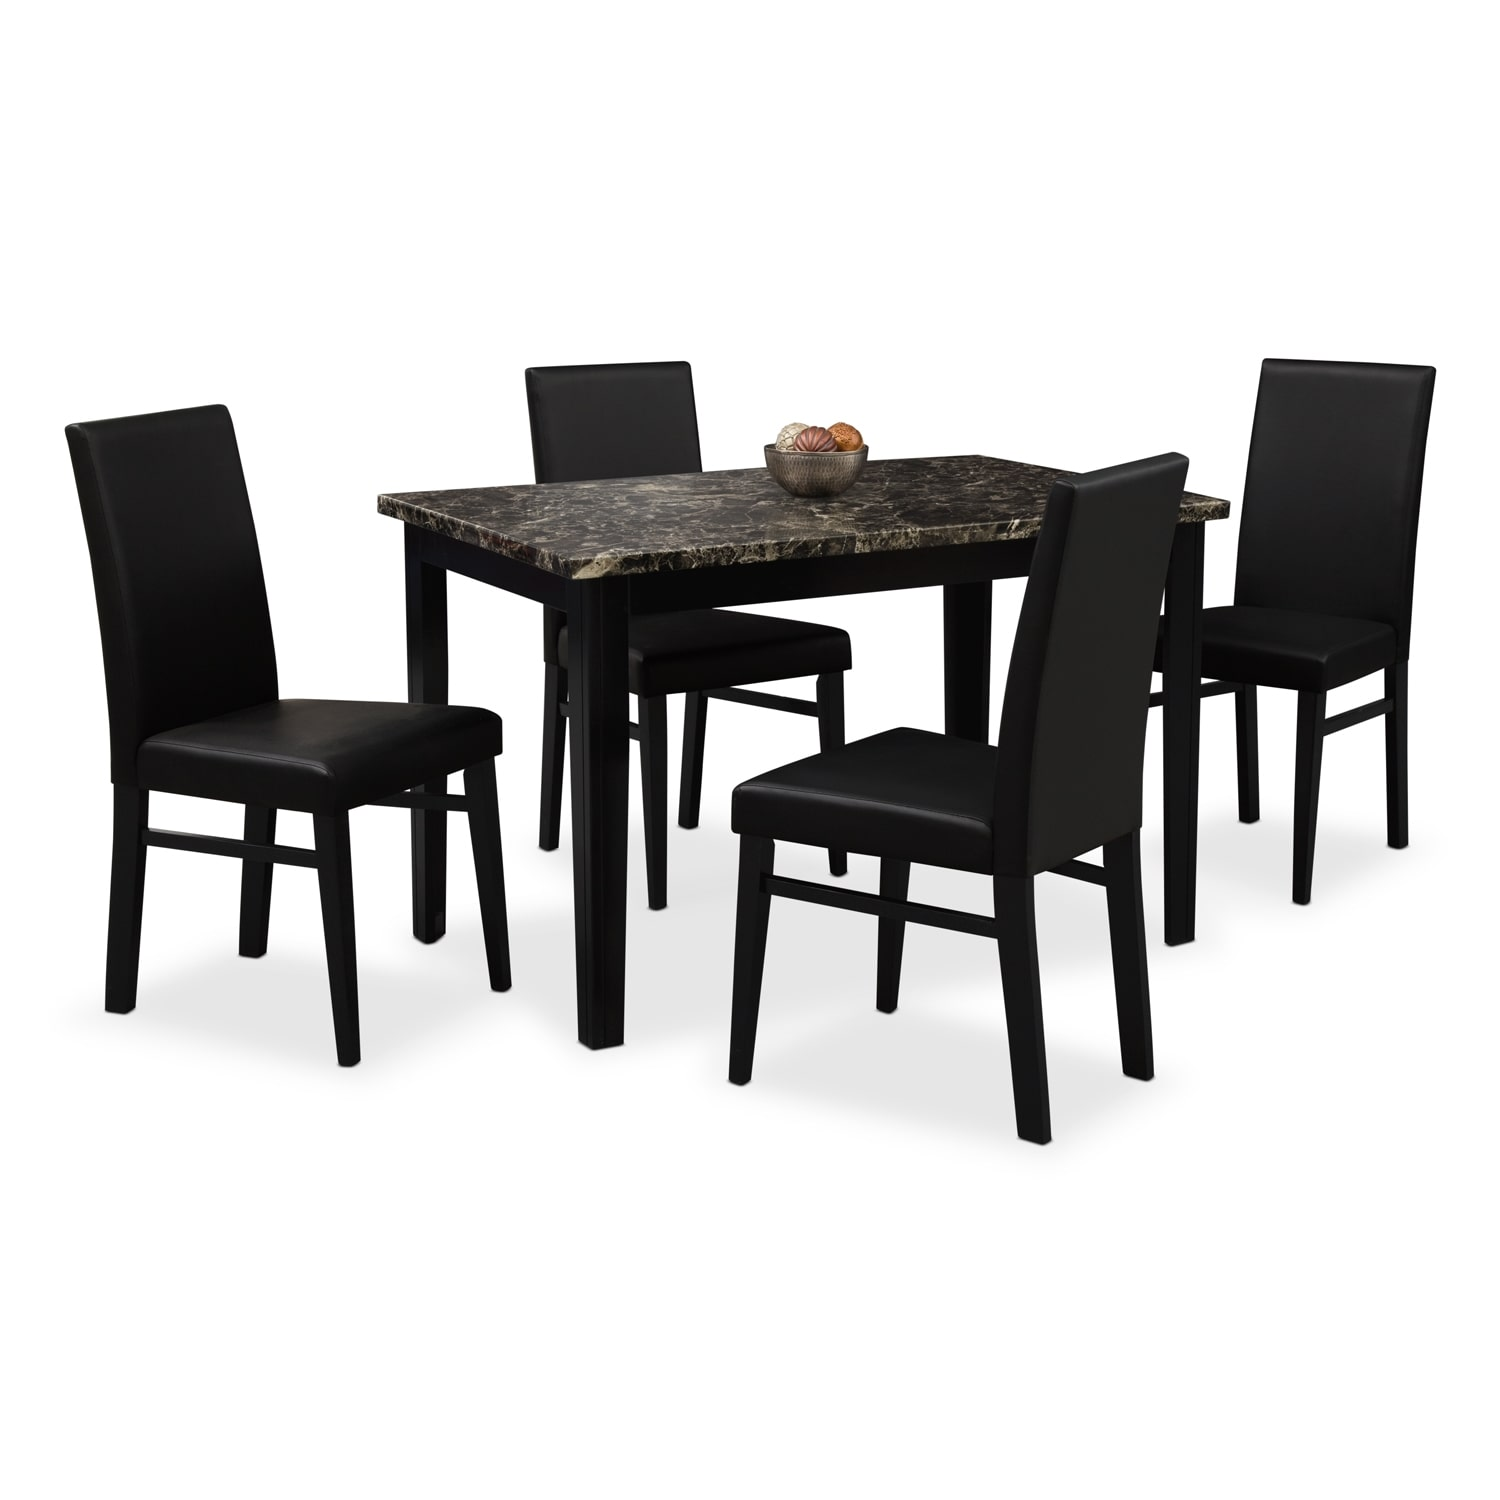 Shadow table and 4 chairs black value city furniture for Black dining sets with 4 chairs